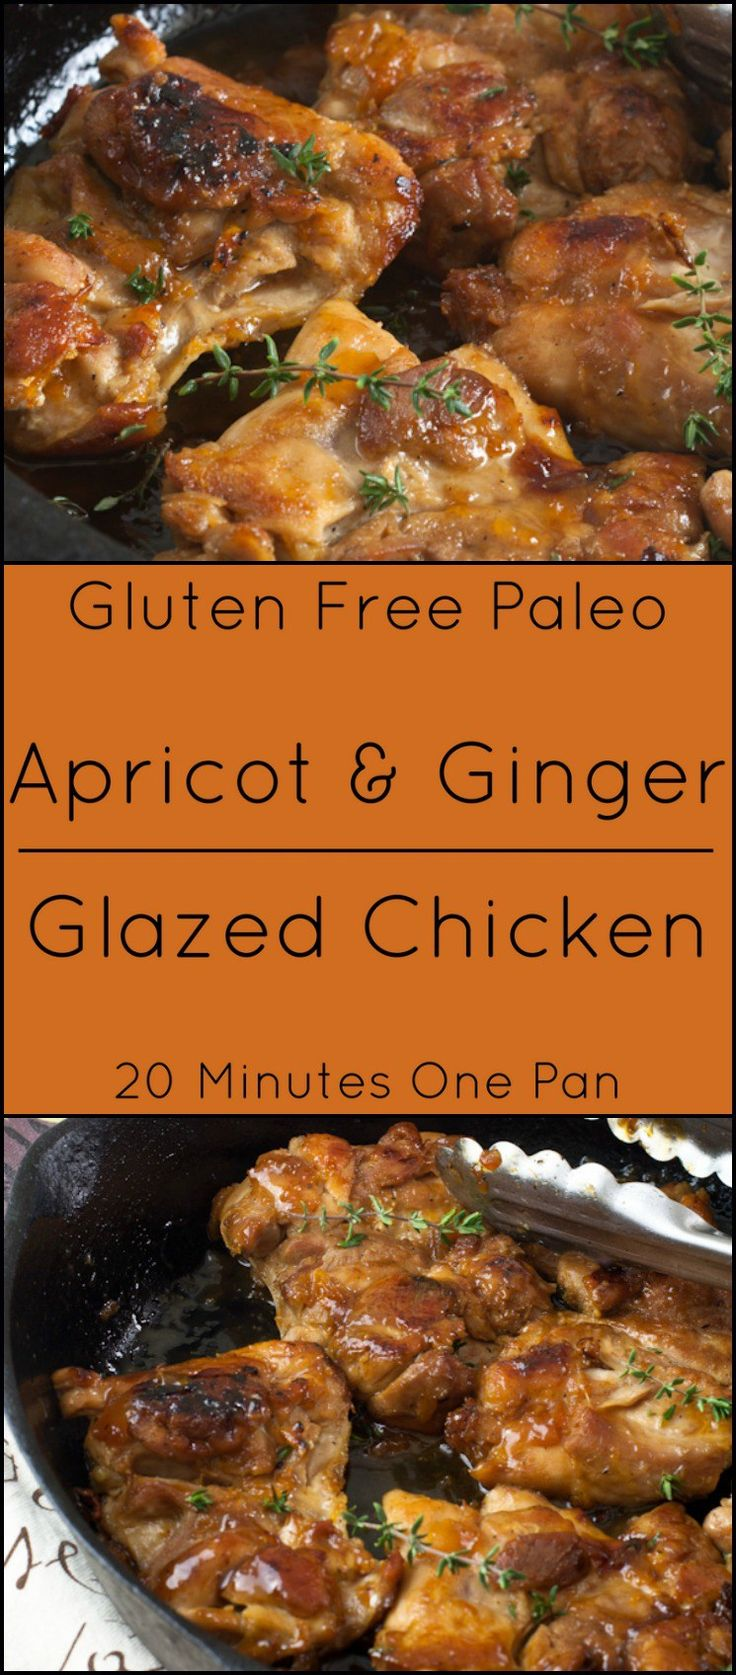 This Apricot & Ginger Glazed Chicken is ready in under 30 minutes, gluten…